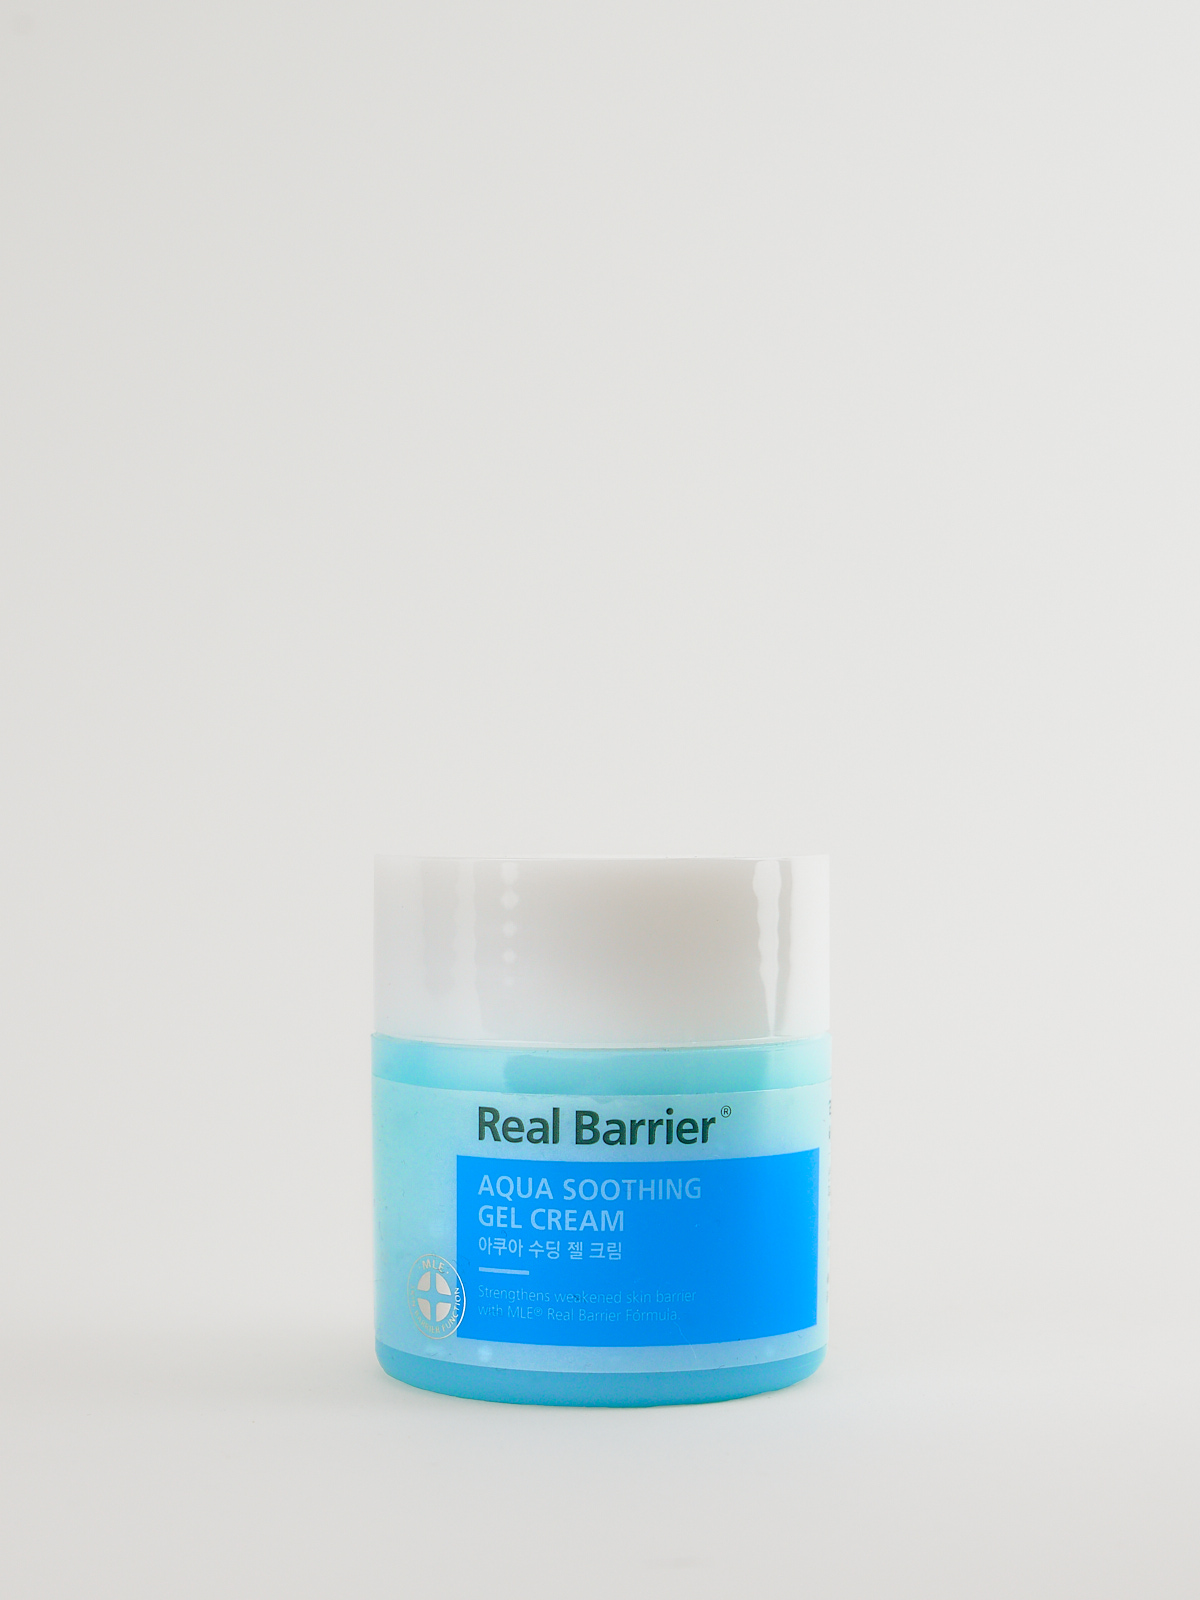 Real Barrier Aqua Soothing Gel Cream in türkisiner Dose